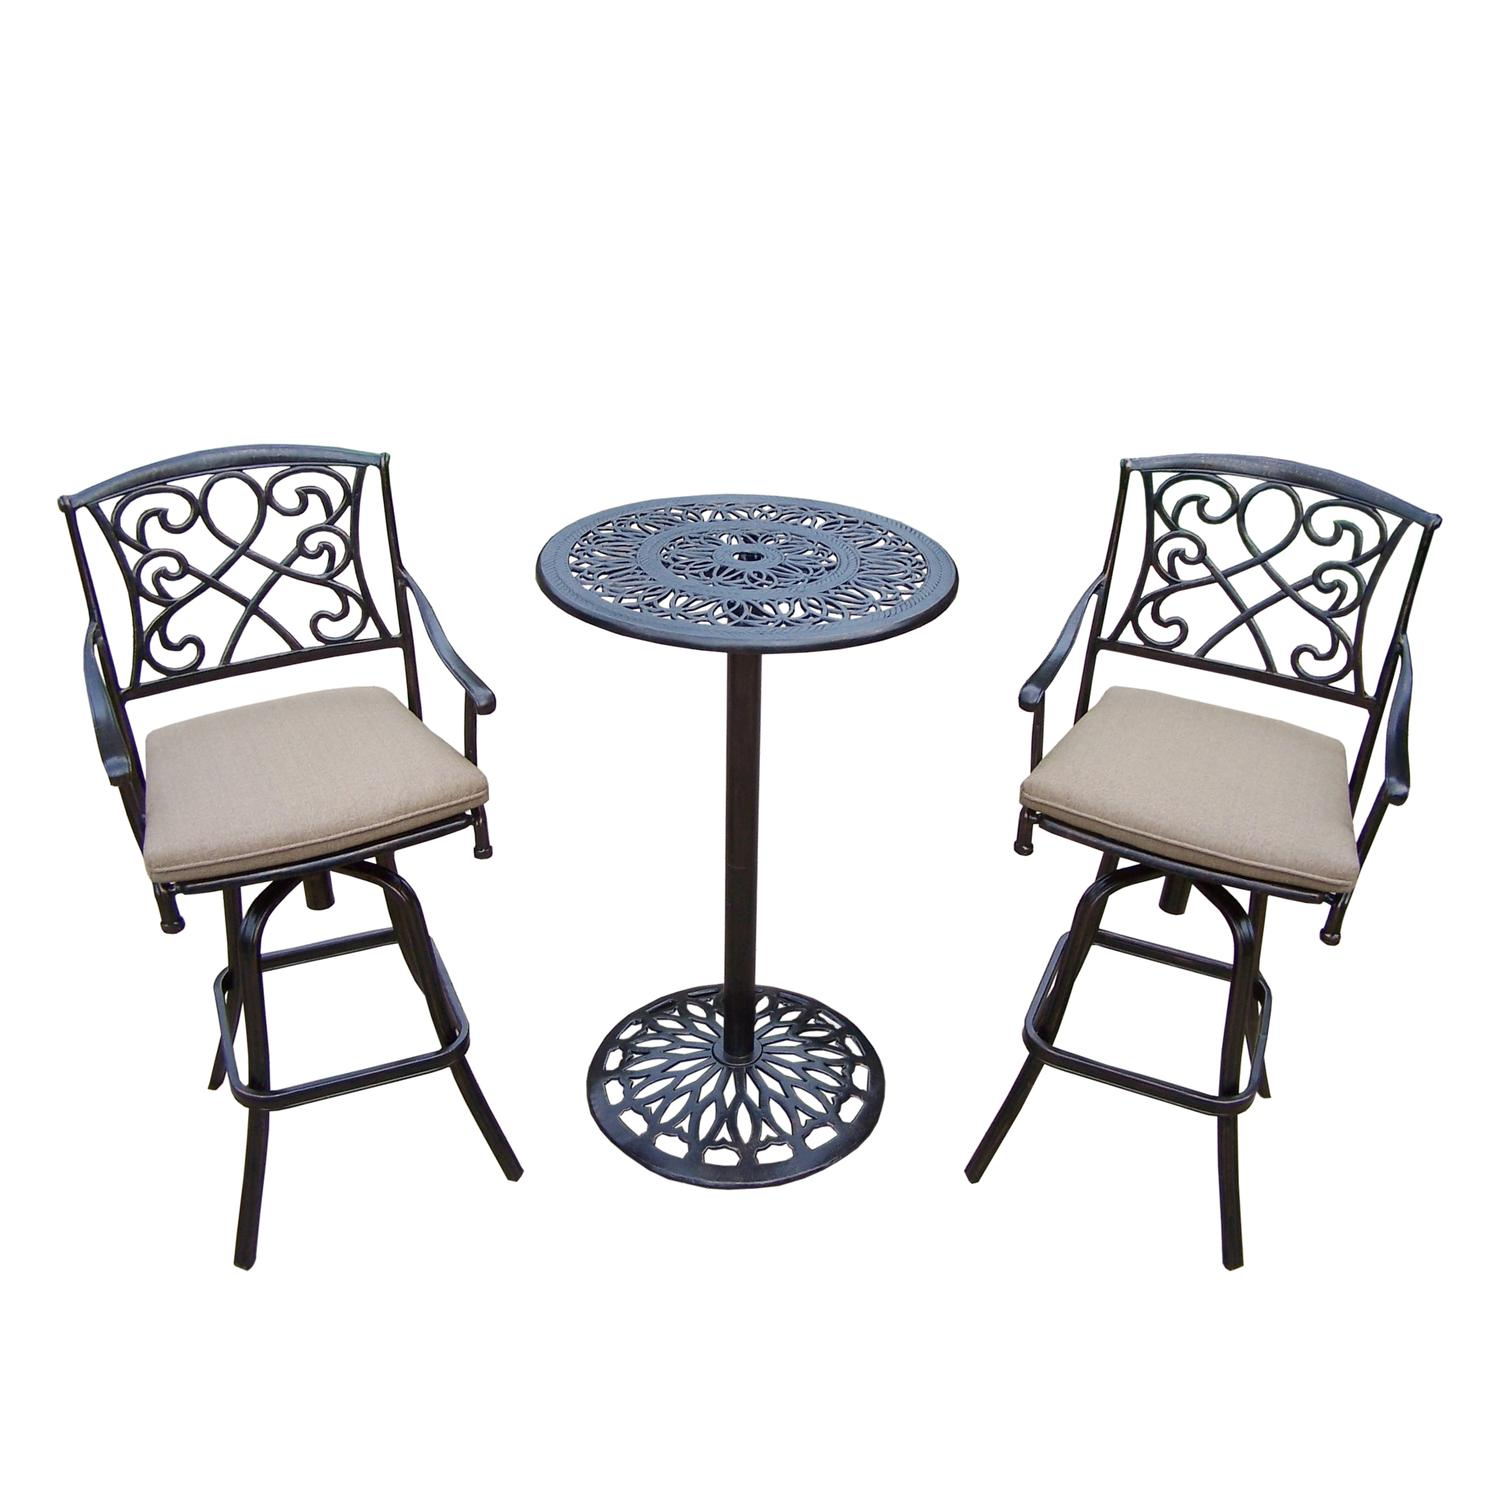 "44"" 3 Pc. Antiqued Bronze Colored Outdoor Patio Bar Set with Cushions"